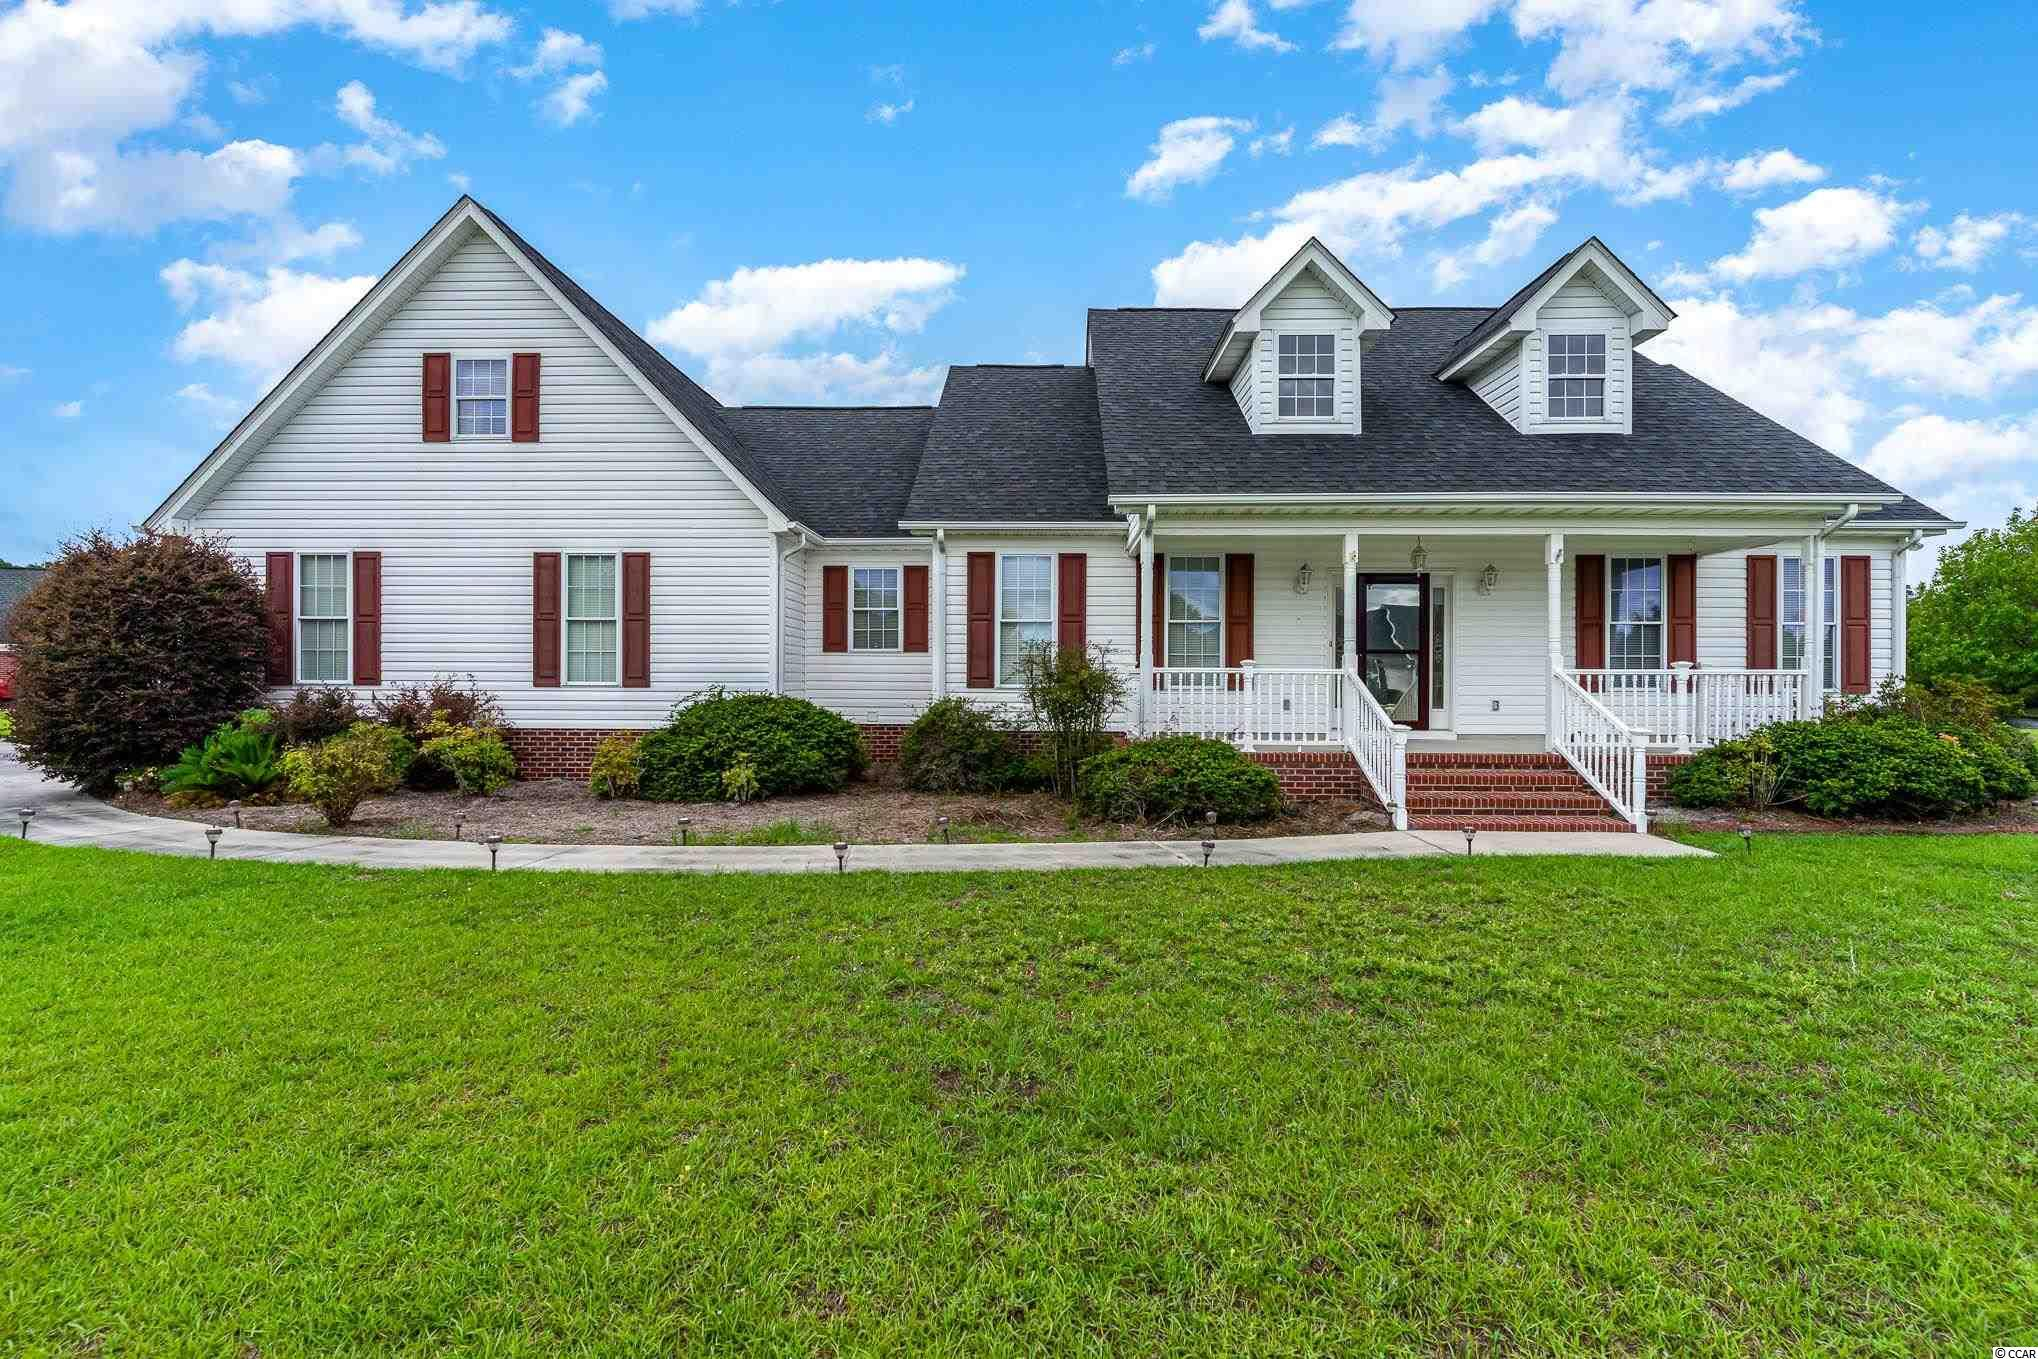 If a large yard, no HOA, and a truly spacious floor plan are what you are searching for, look no further! This home sits on just under an acre (0.99), has over 3100 heated square feet, and features a huge detached garage! This 4 bed/3.5 bath home provides a lot of value and space. The home has been used almost exclusively as a second home, and shows minimal wear and tear. Cook and entertain for a crowd with the large kitchen and formal dining room, relax by the fireplace in the oversized family room, or get some work done in the cozy office nook. On the occasionally cool nights, you can also enjoy a nice fireplace in the master bedroom  Outside, you can enjoy a nice breeze on the back deck while watching wildlife in and around the pond. If you have lots of tools or toys, there is plenty of room to store them in either the attached 2-car garage with storage rooms, or in the detached garage. The detached garage also has great potential for a man cave or she-shed! If quiet country living that is still convenient to all that Downtown Conway and the Grand Strand have to offer is for you, don't delay! Contact an agent today to schedule a showing.